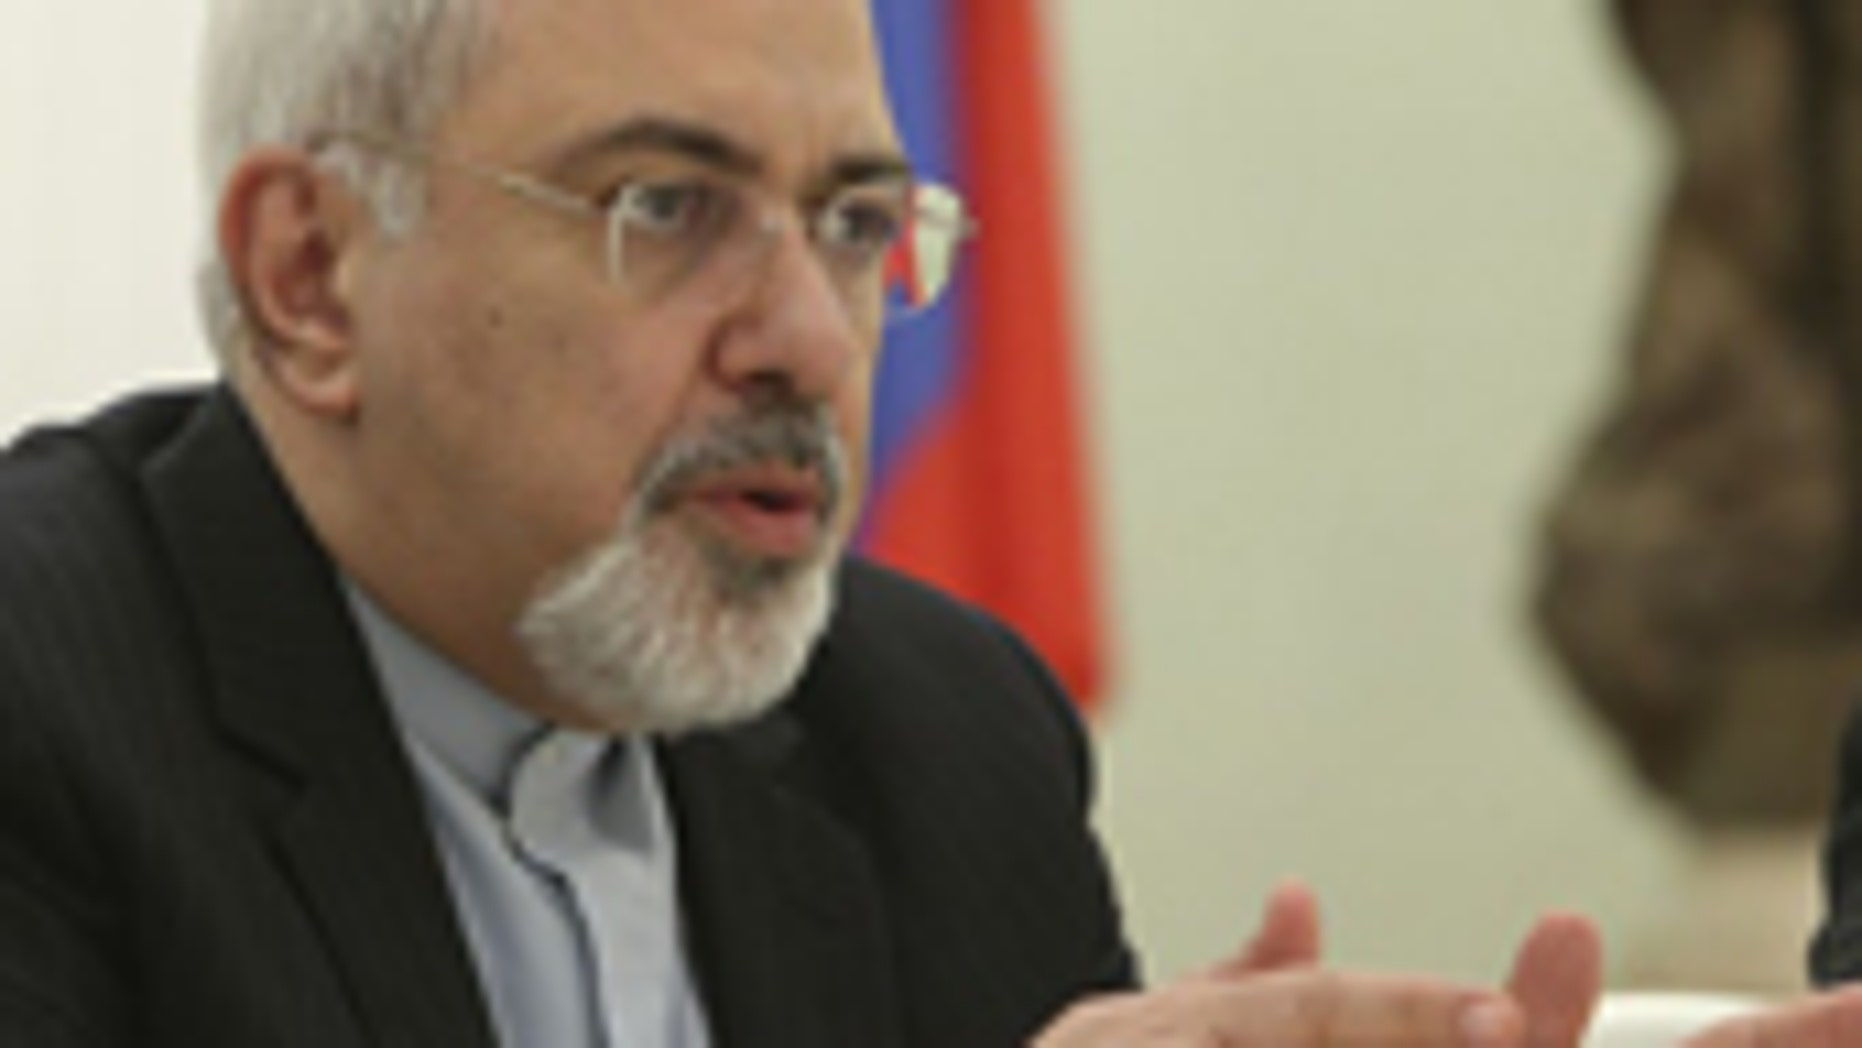 Iranian Foreign Minister Mohammad Javad Zarif speaks at his meeting with Russian President Vladimir Putin in the Kremlin in Moscow, Russia, Thursday, Jan. 16, 2014.